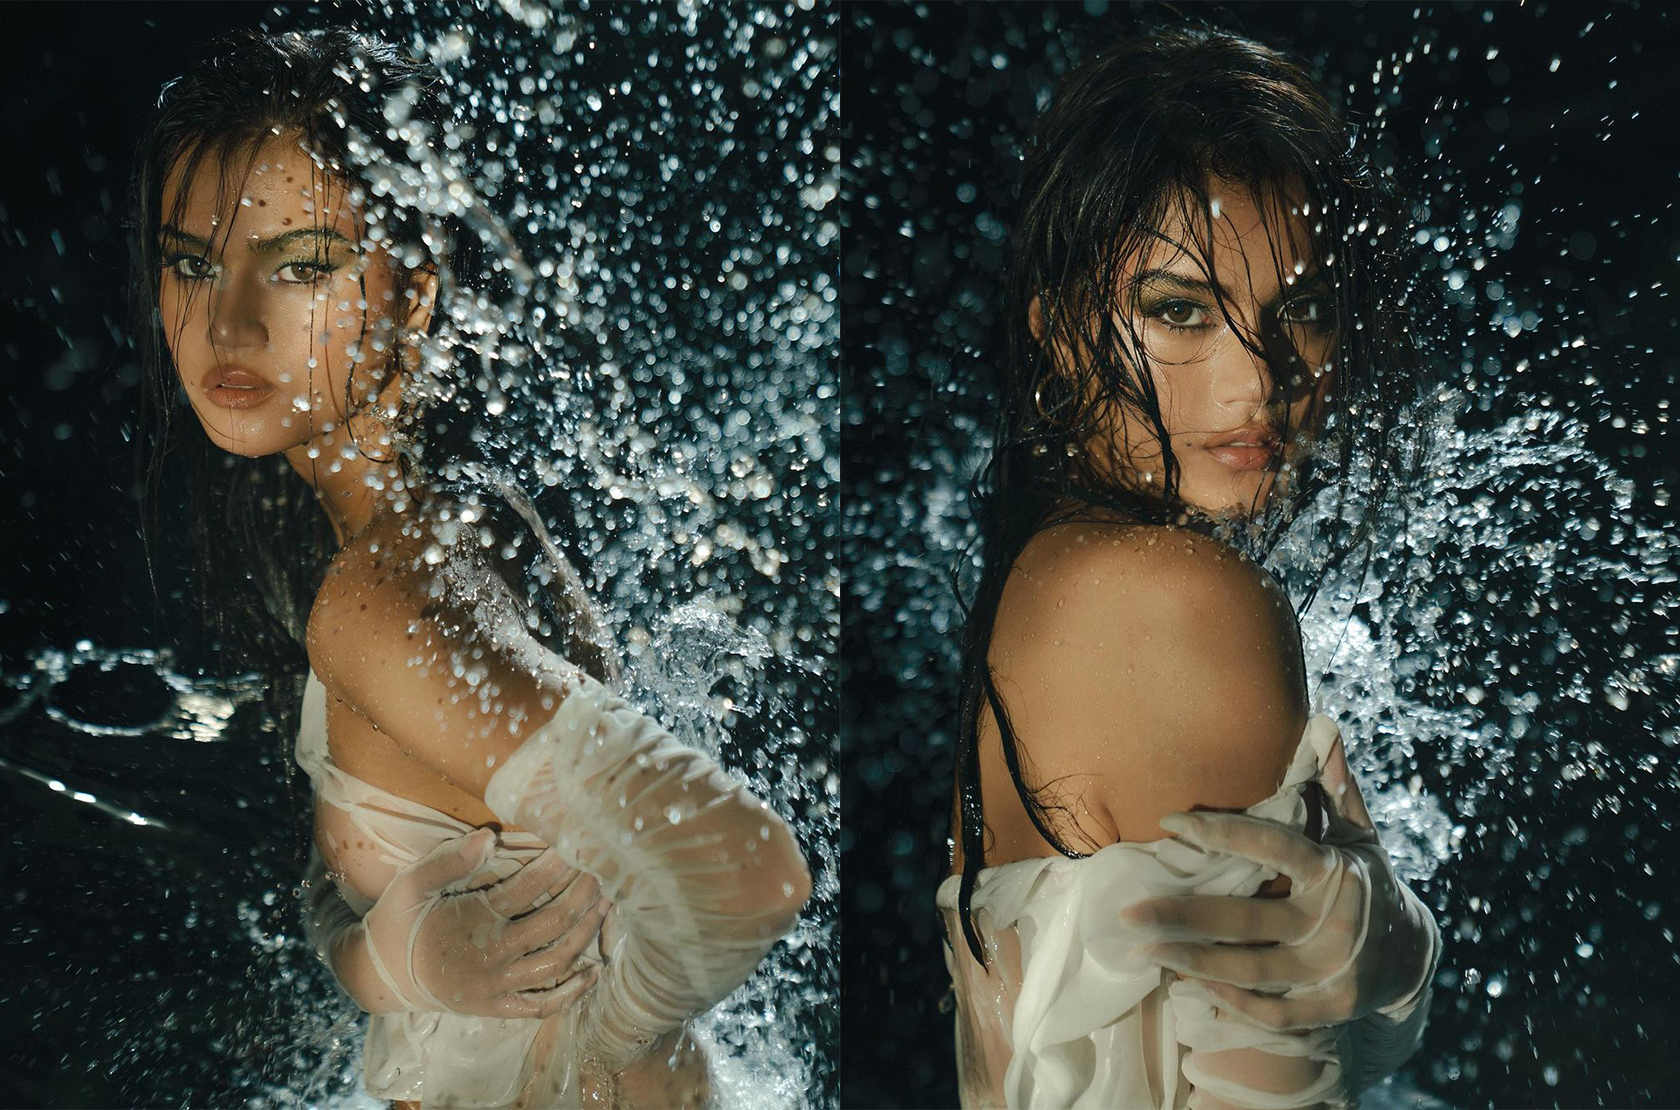 MARIS RACAL MAKES A SPLASH IN HER DRIPPING BIRTHDAY SHOOT